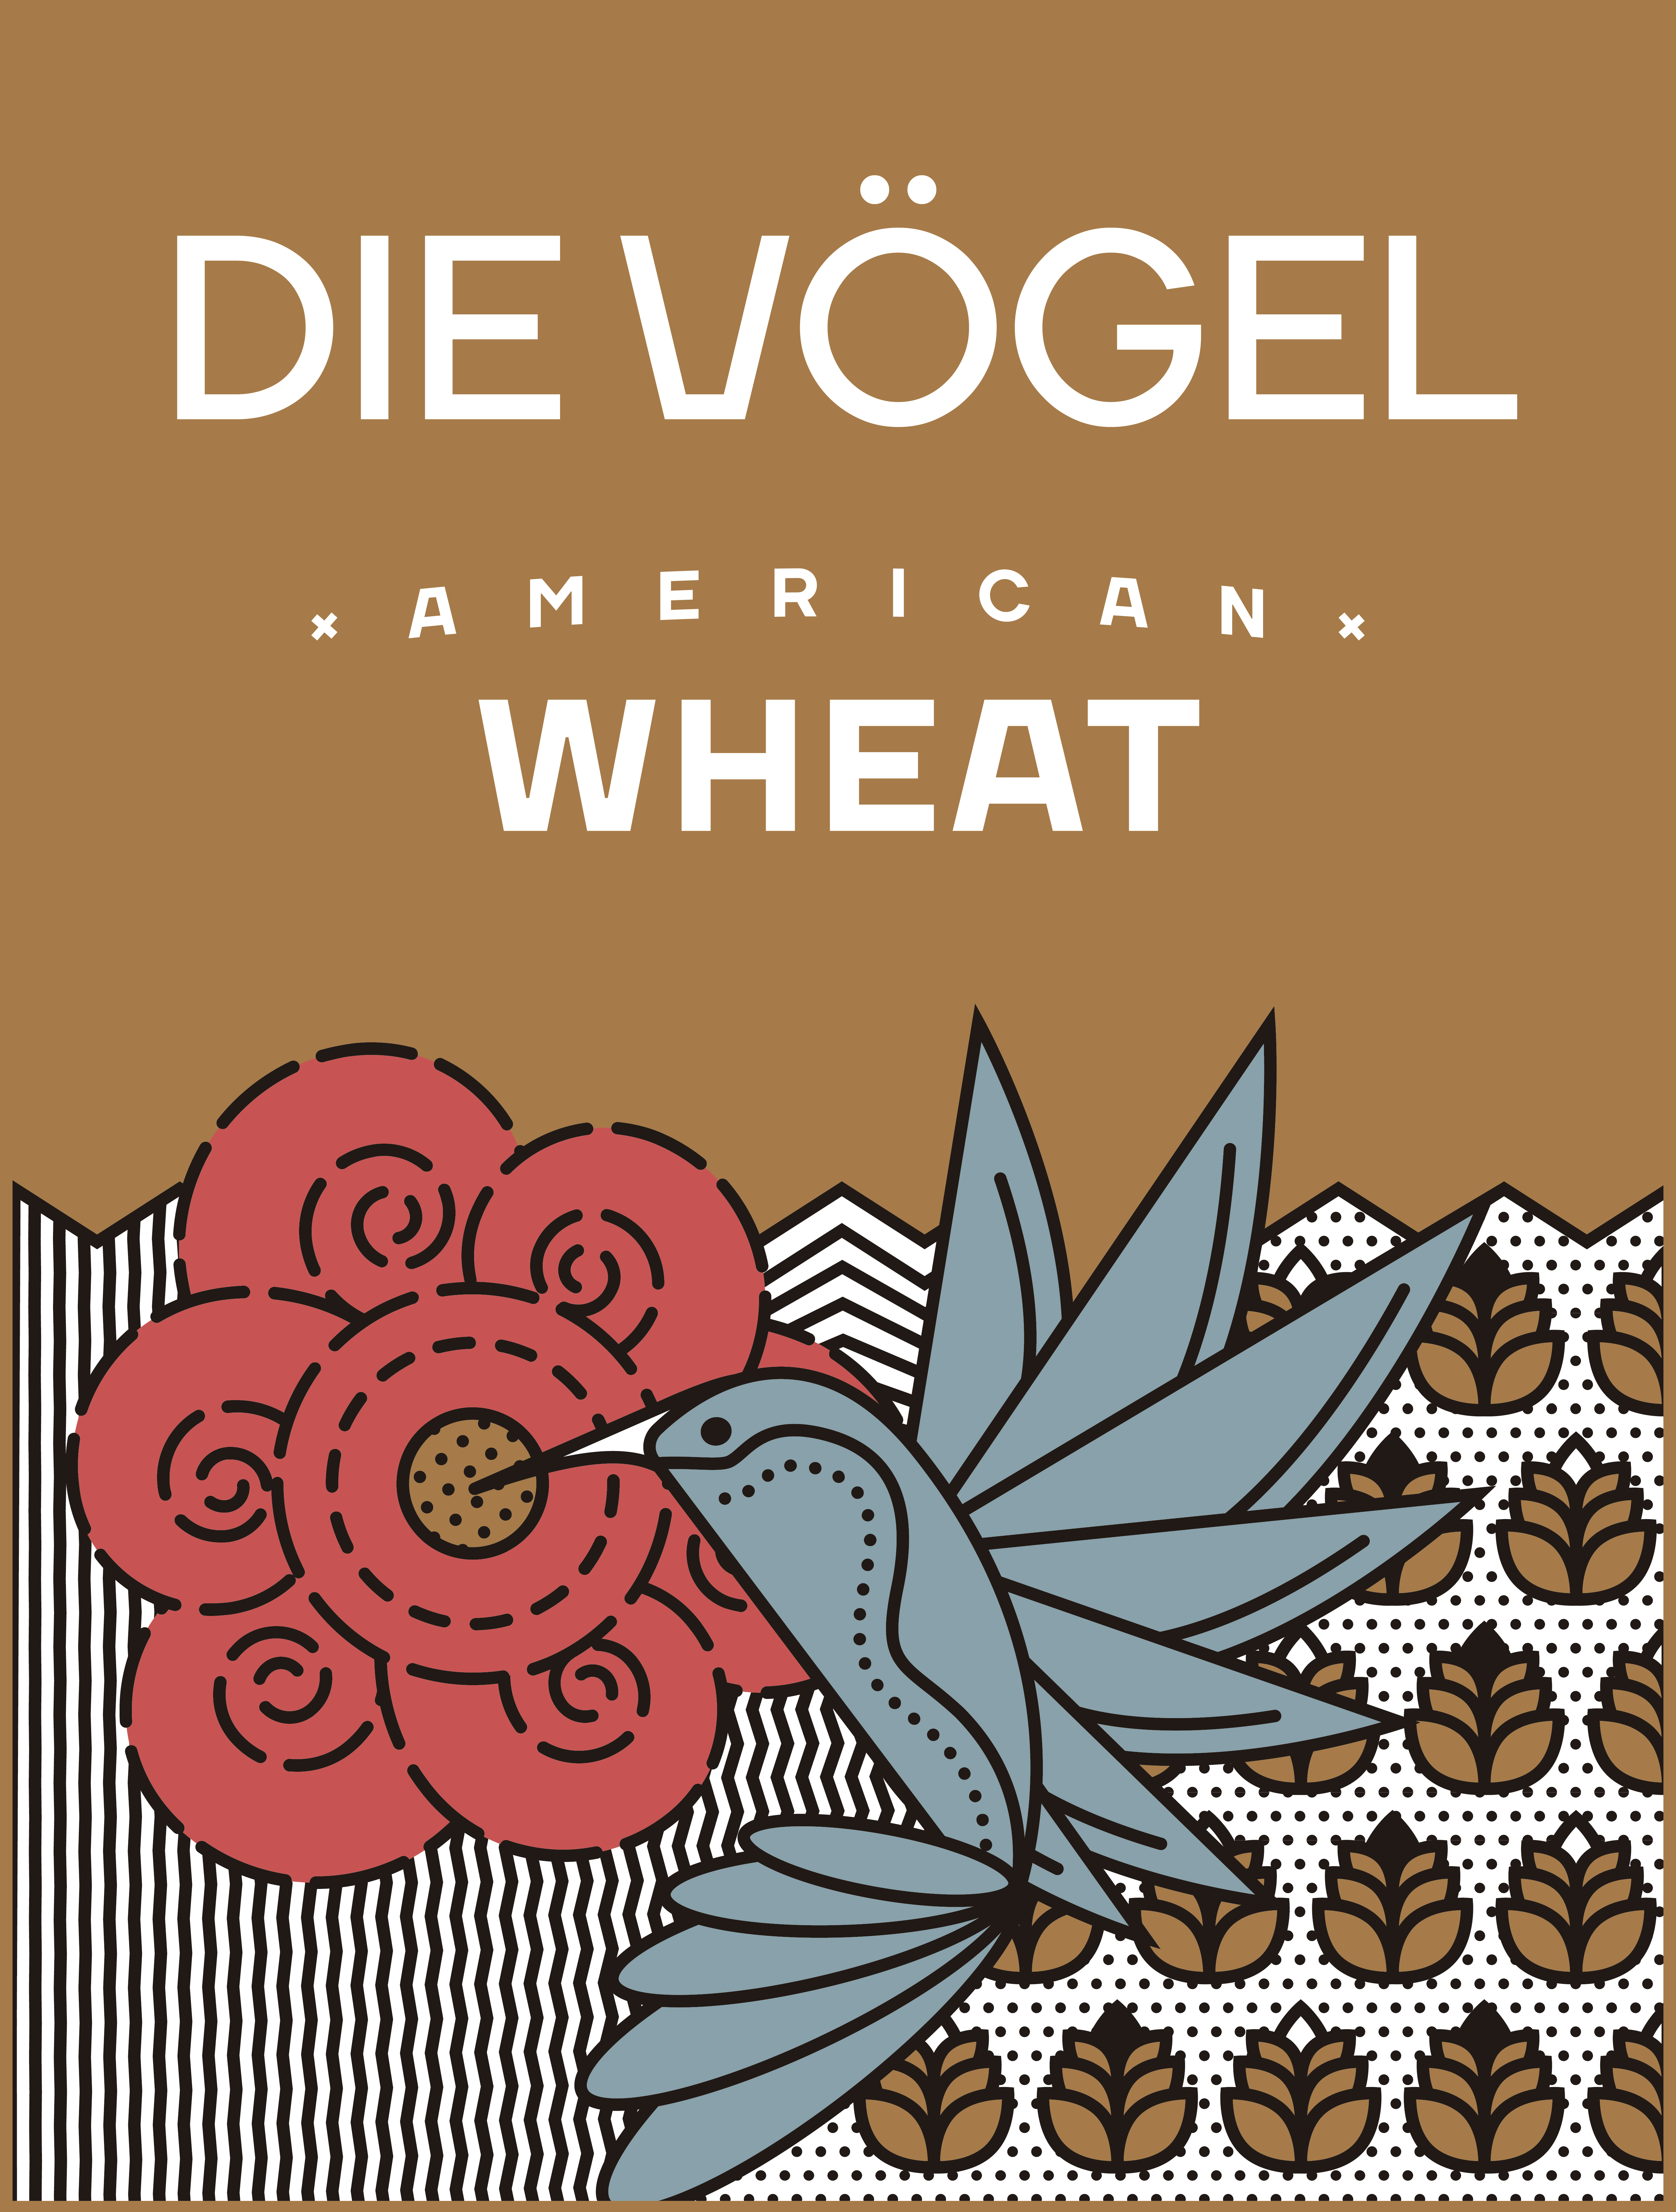 4 Pack [473 cc] - Die Vögel American Wheat